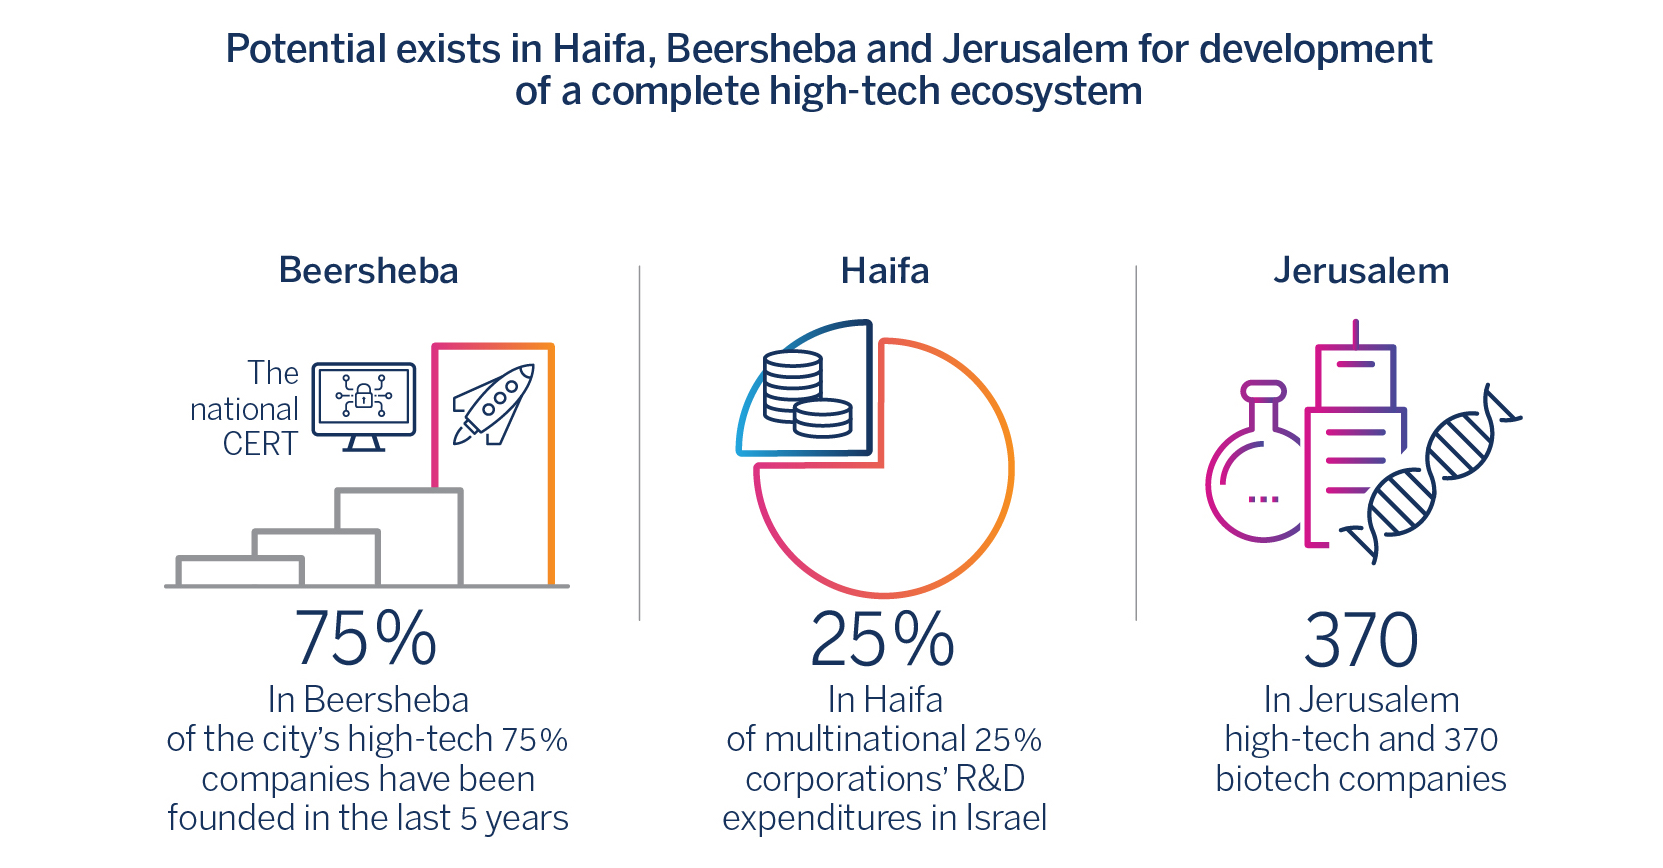 Potential exists in Haifa, Beersheba and Jerusalem for development of a complete high-tech ecosystem